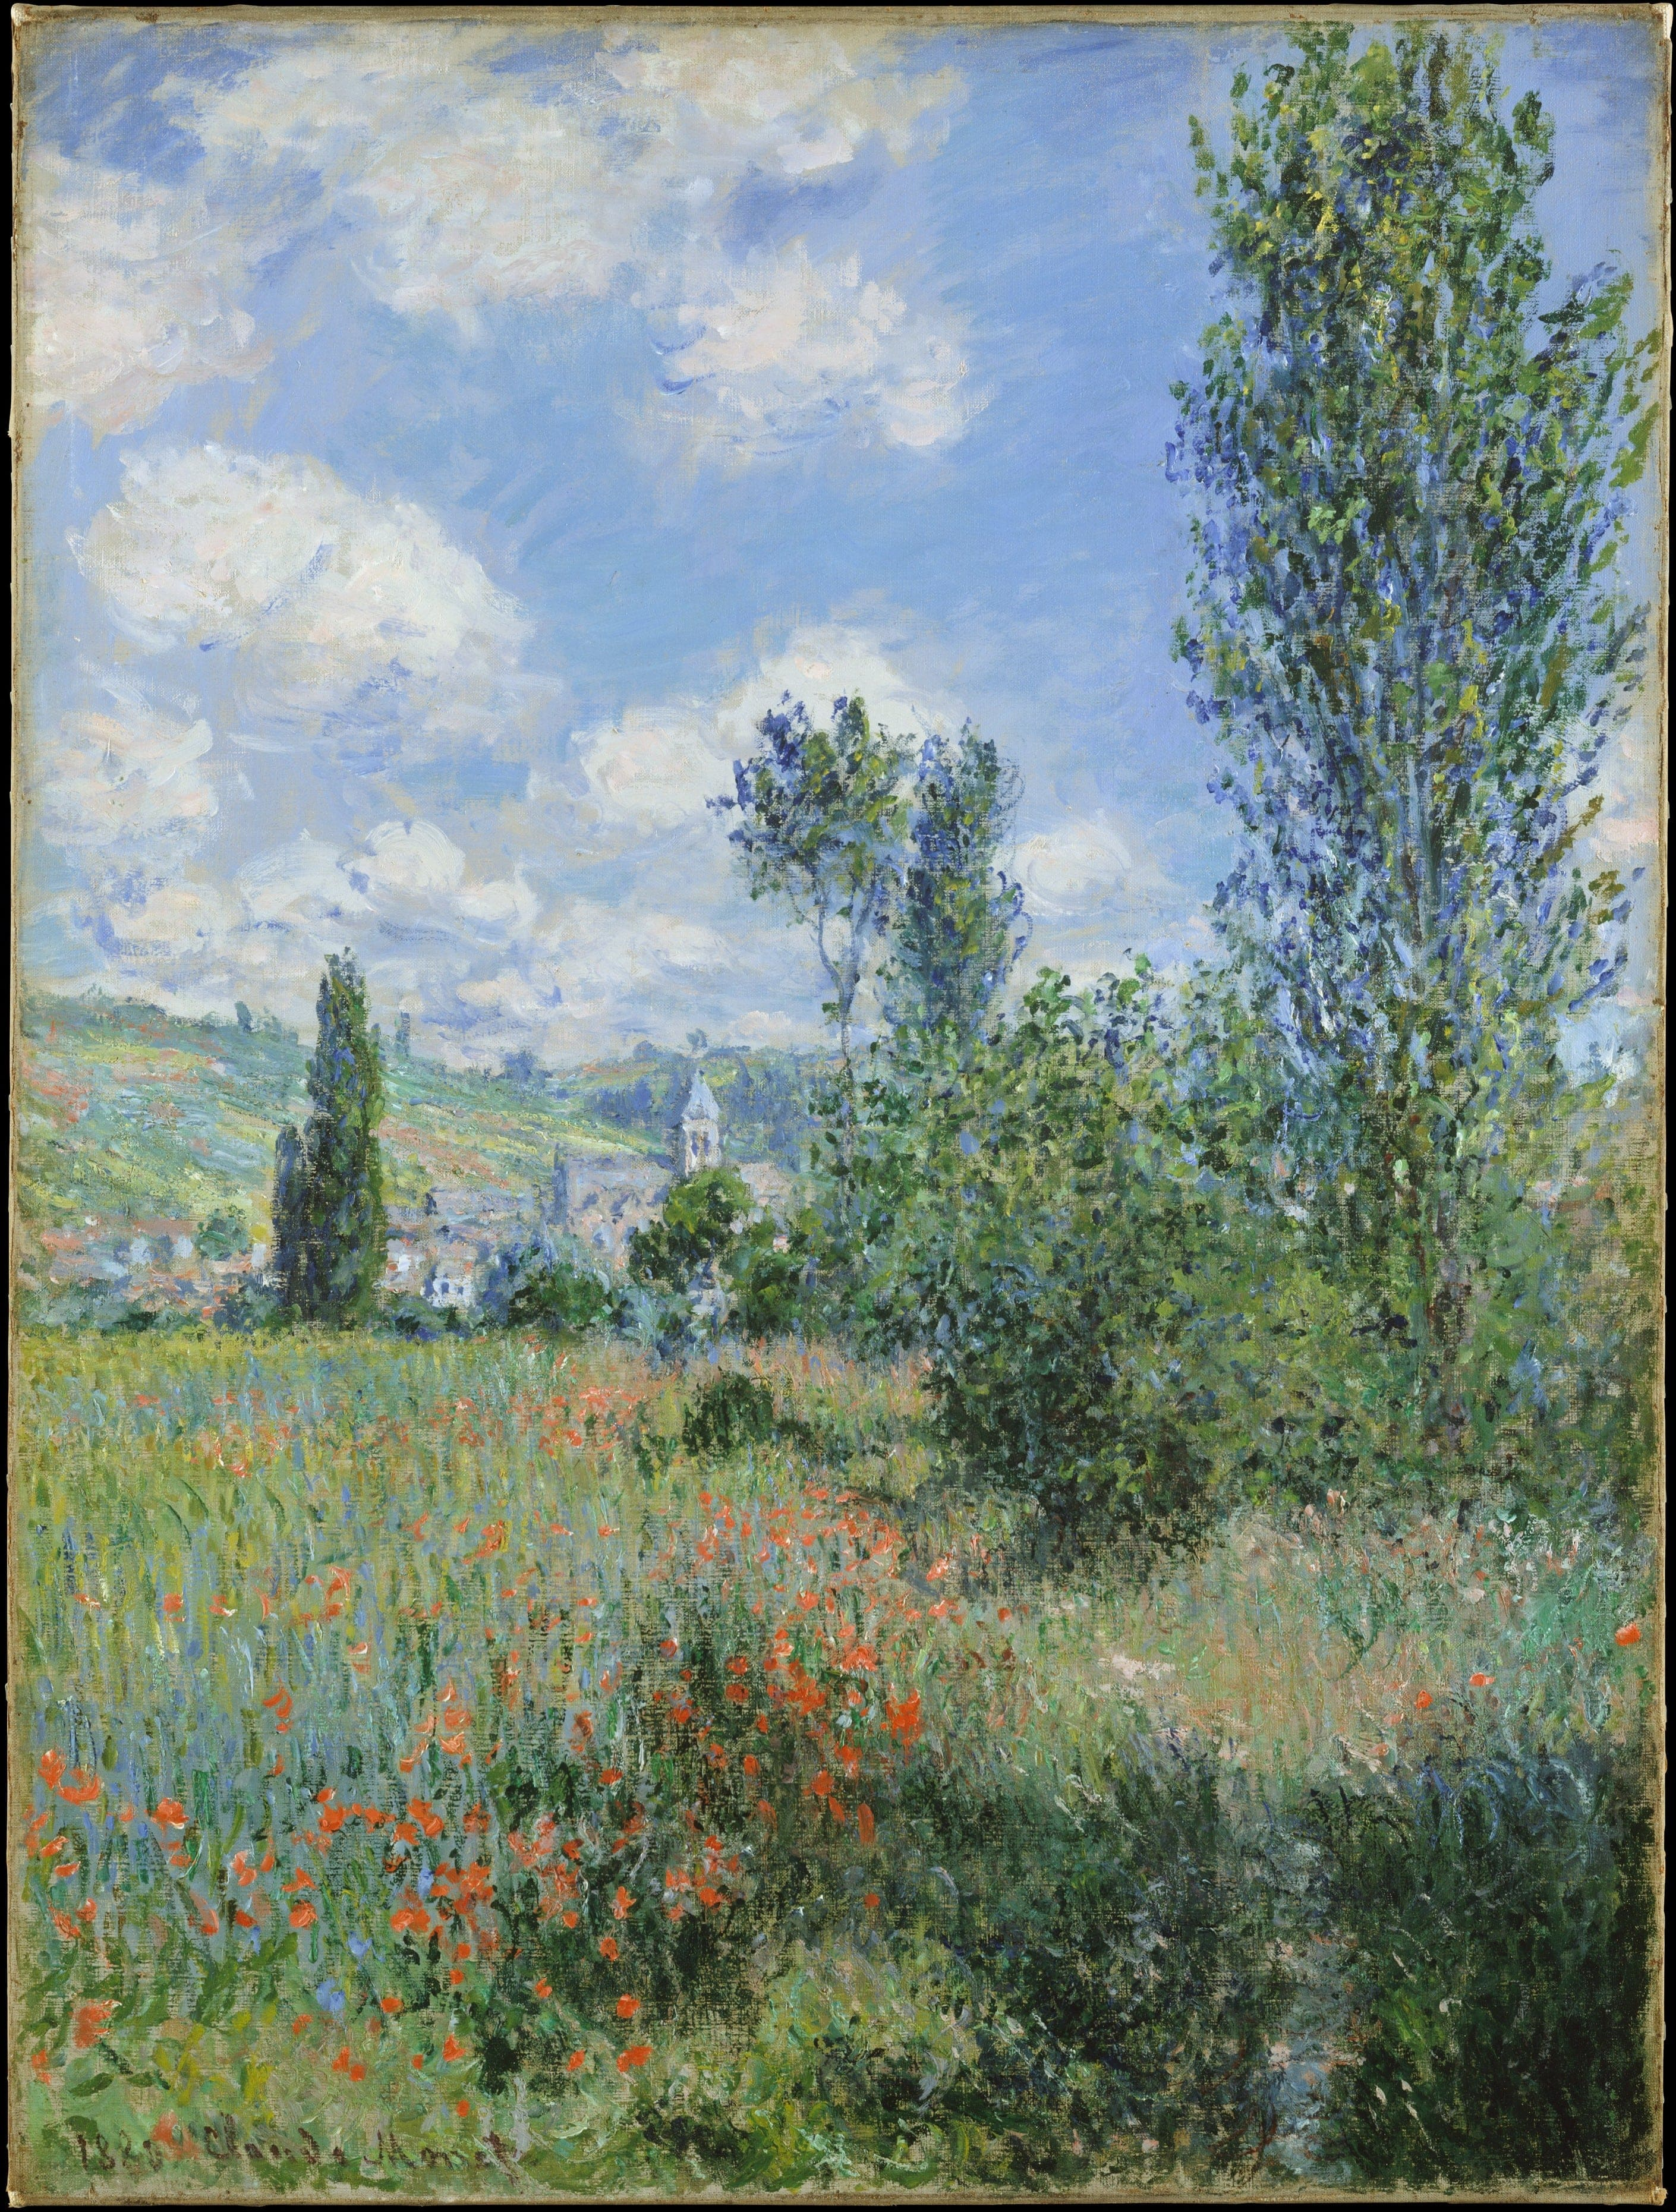 View of Vetheuil, Claude Monet-min-min